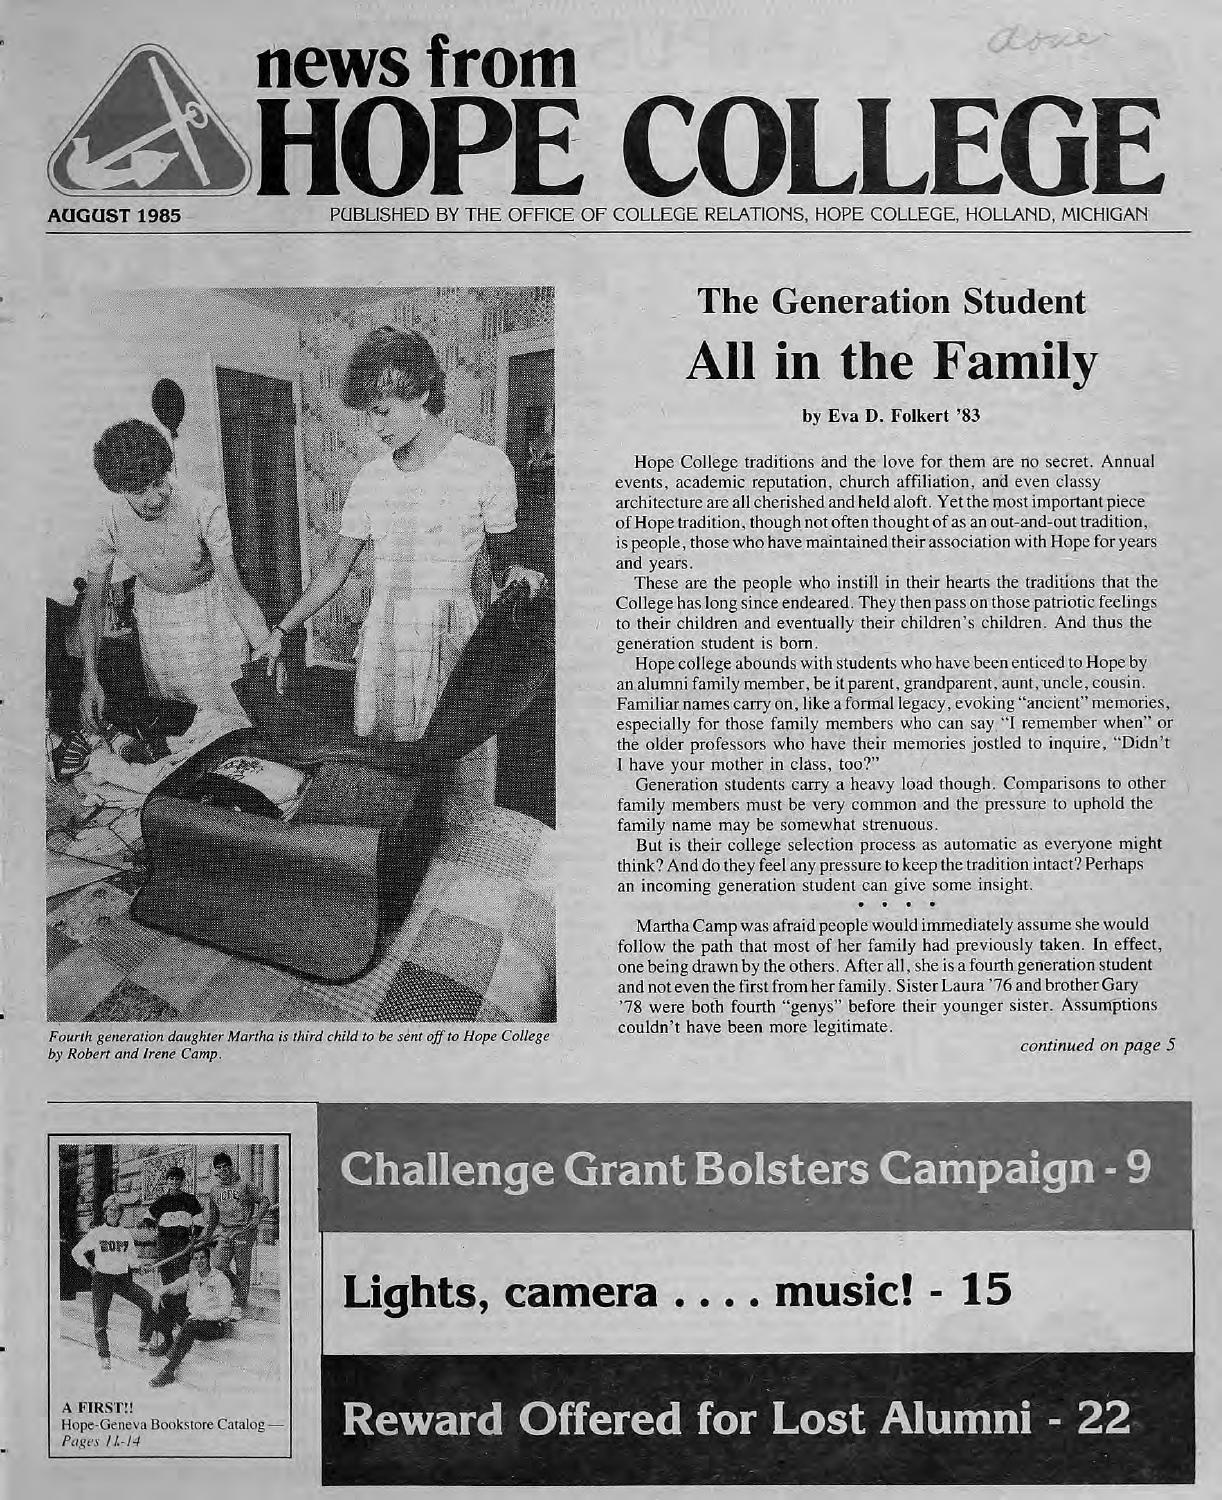 Reduced nfhc 1985 08 by Hope College Library - issuu 21d7a25b76b06